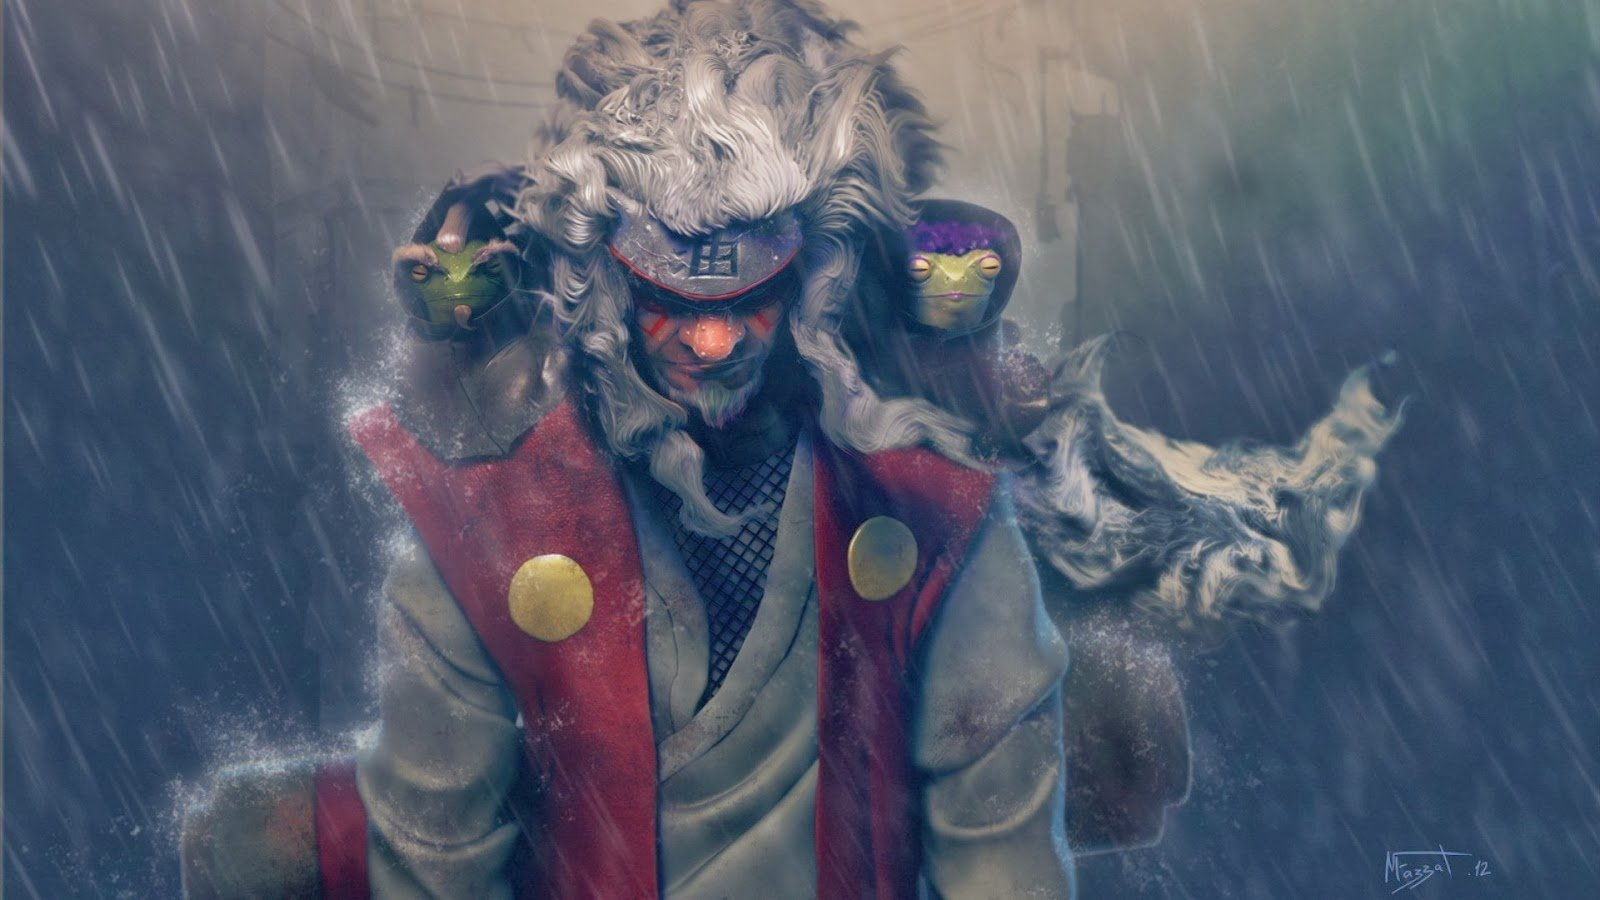 Wallpapers Pictures The Most Epic Jiraiya from Naruto Shippudden 1600x900